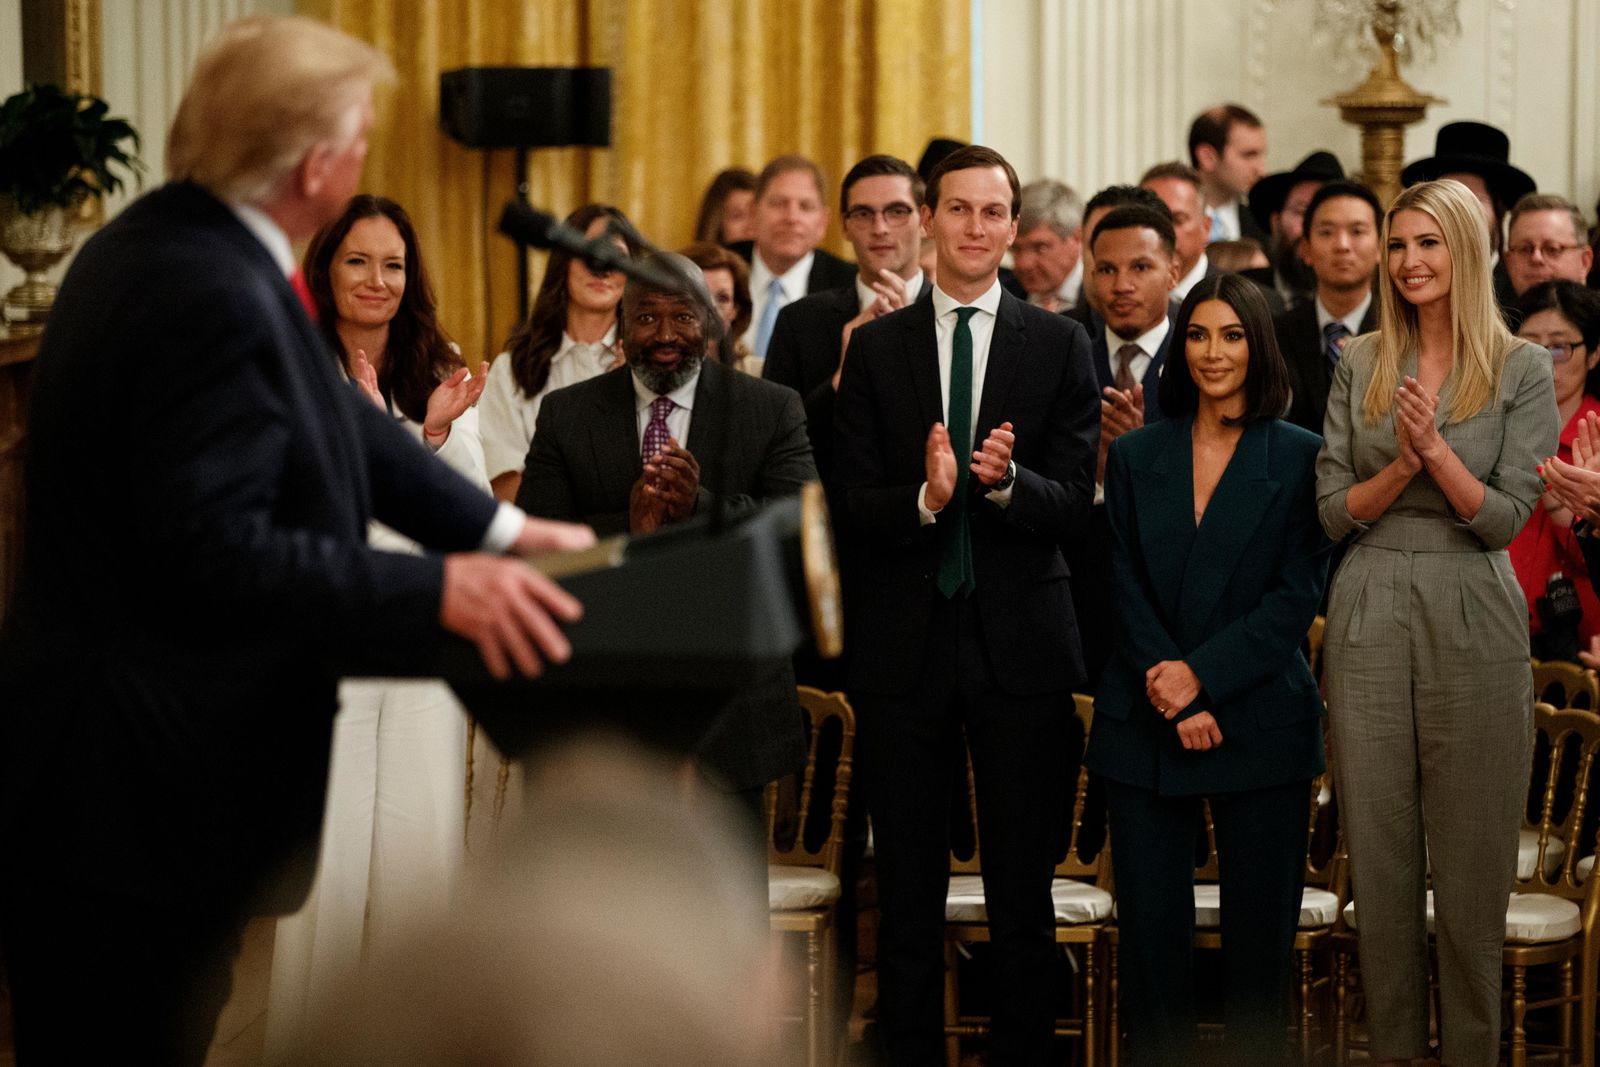 Kim Kardashian West, who is among the celebrities who have advocated for criminal justice reform, stands with White House senior adviser Jared Kushner and Ivanka Trump during an event on second chance hiring and criminal justice reform with President Donald Trump in the East Room of the White House, Thursday, June 13, 2019, in Washington. (AP Photo/Evan Vucci)